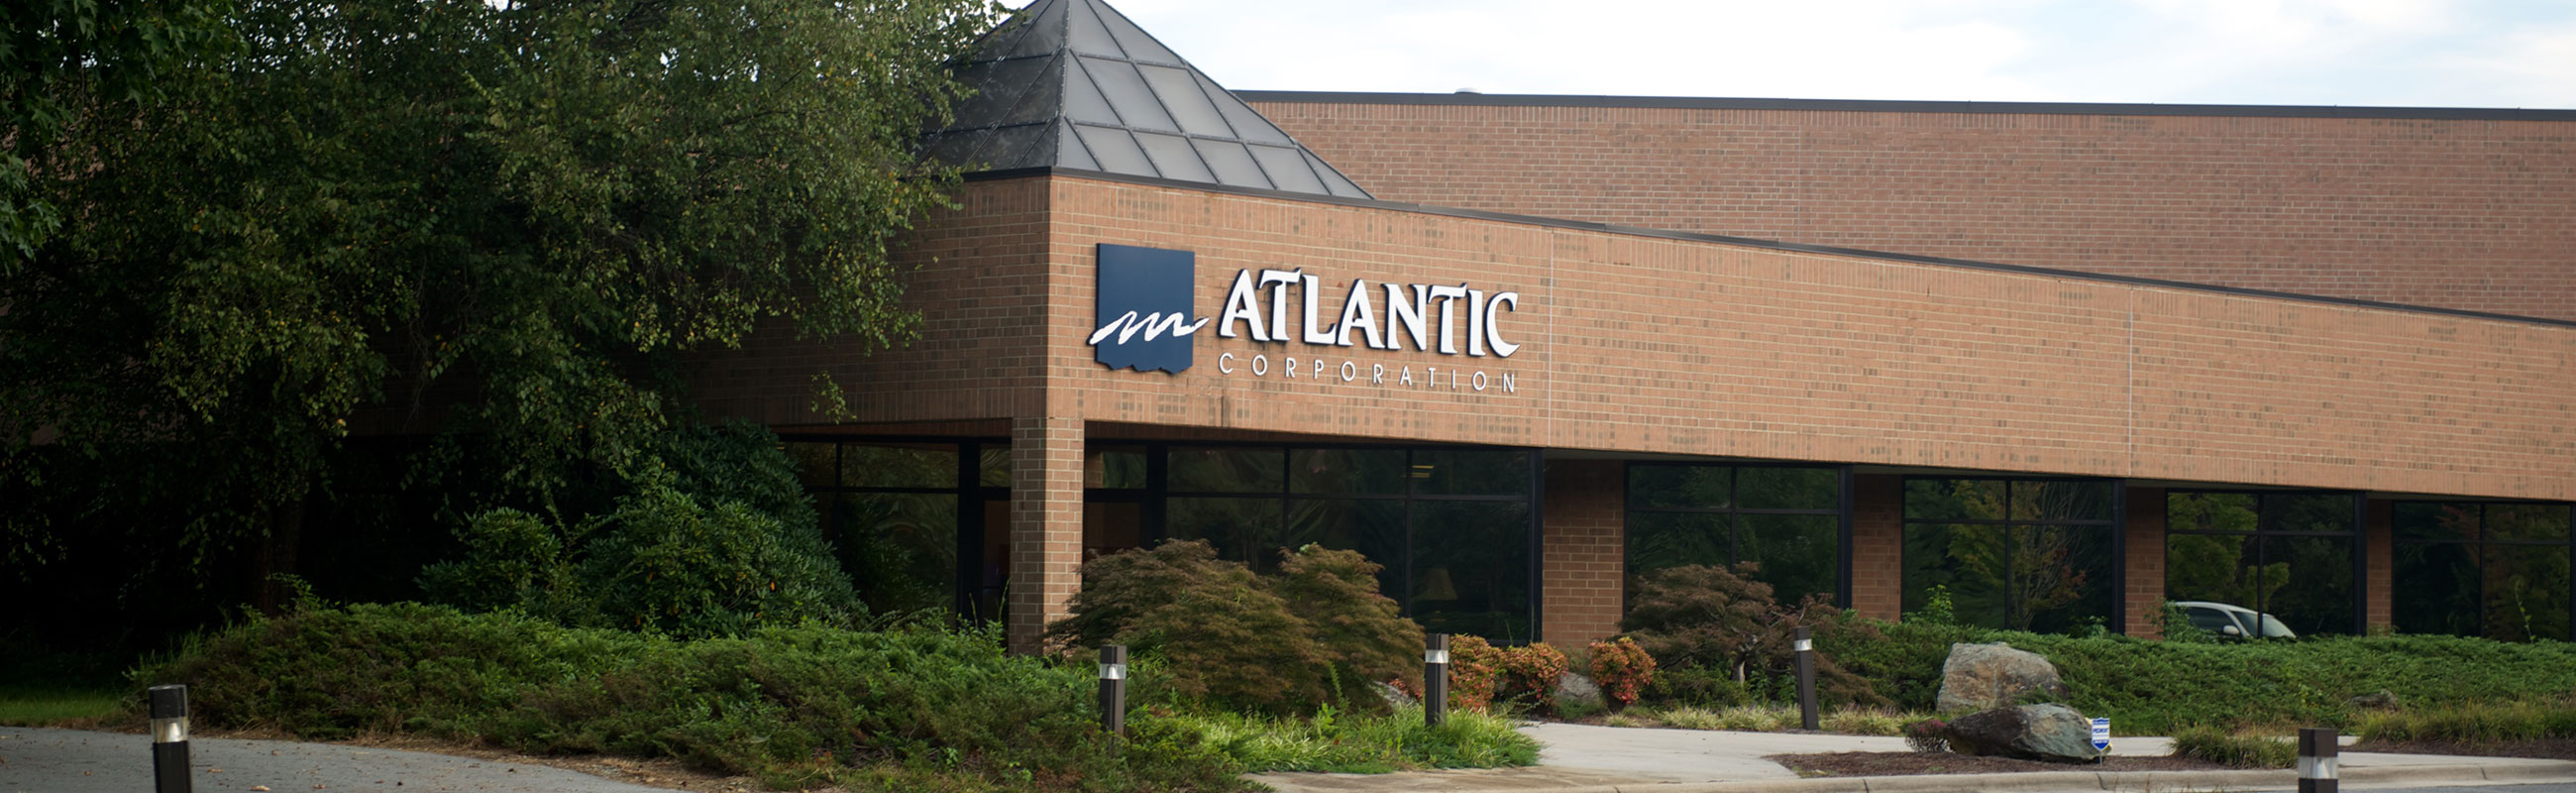 Greensboro, NC - Atlantic Packaging Branch